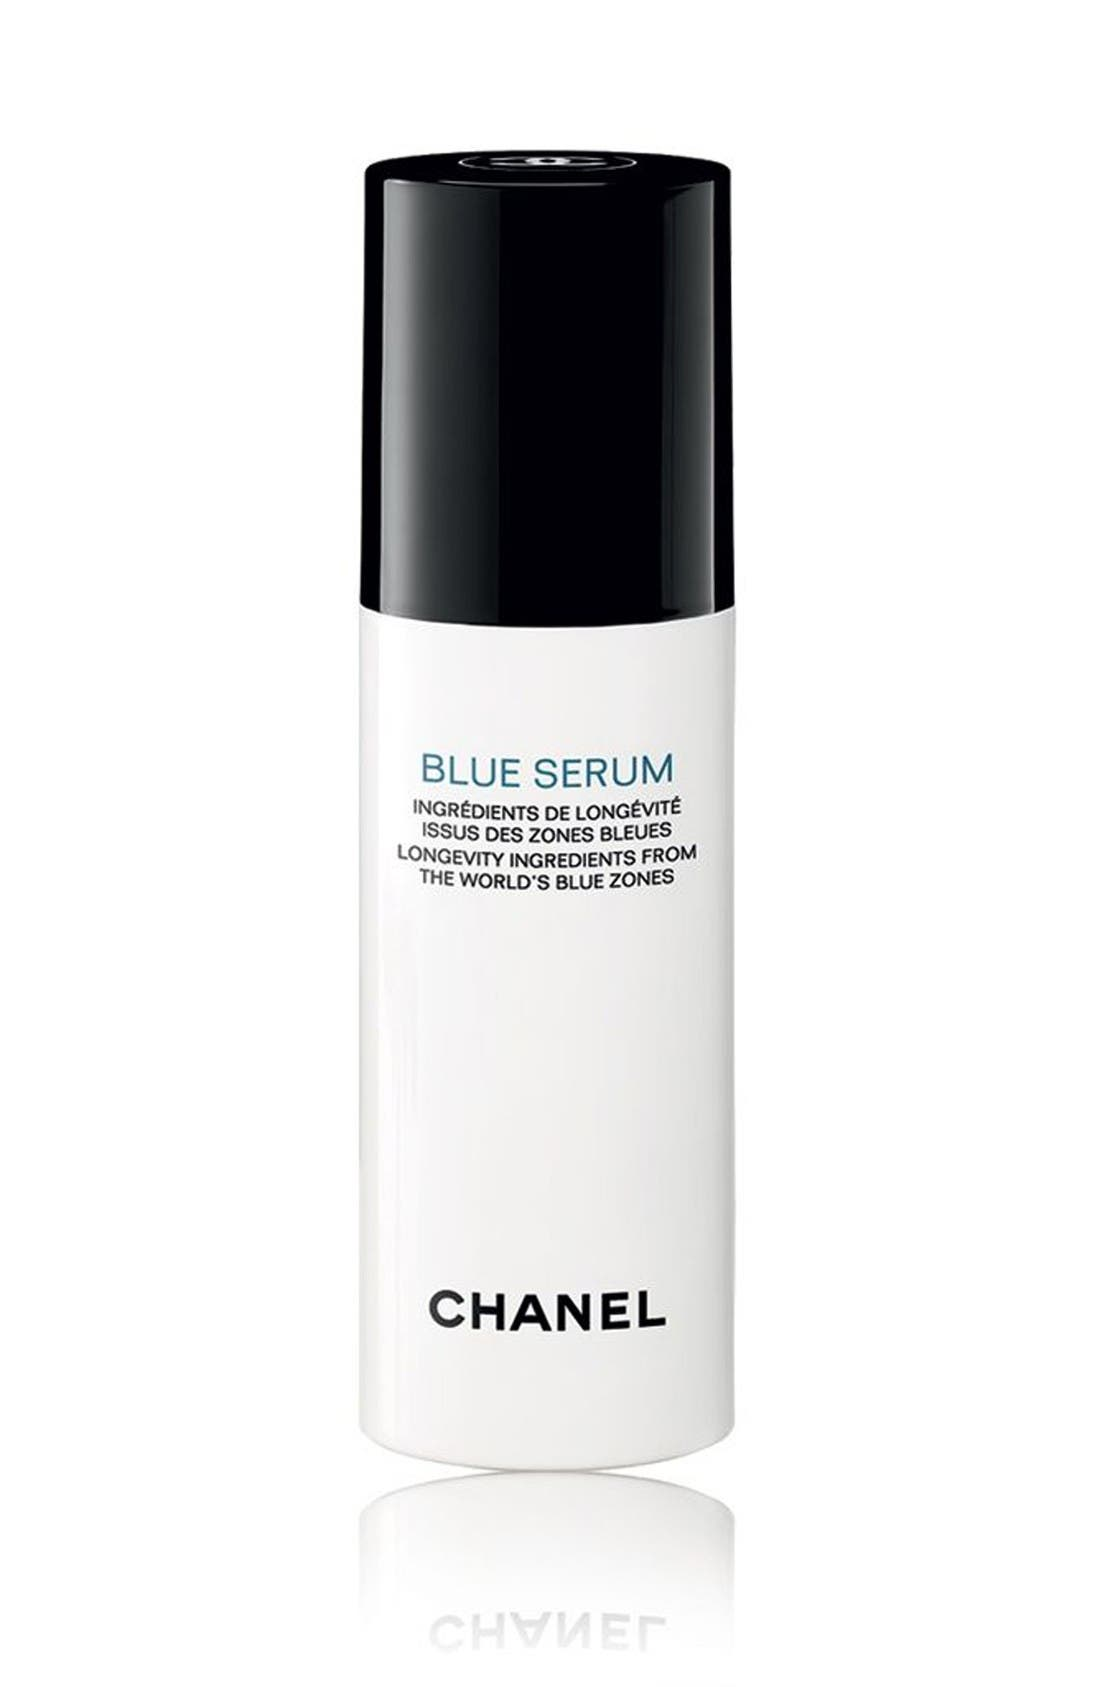 Main Image - CHANEL BLUE SERUM  Longevity Ingredients From The World's Blue Zones